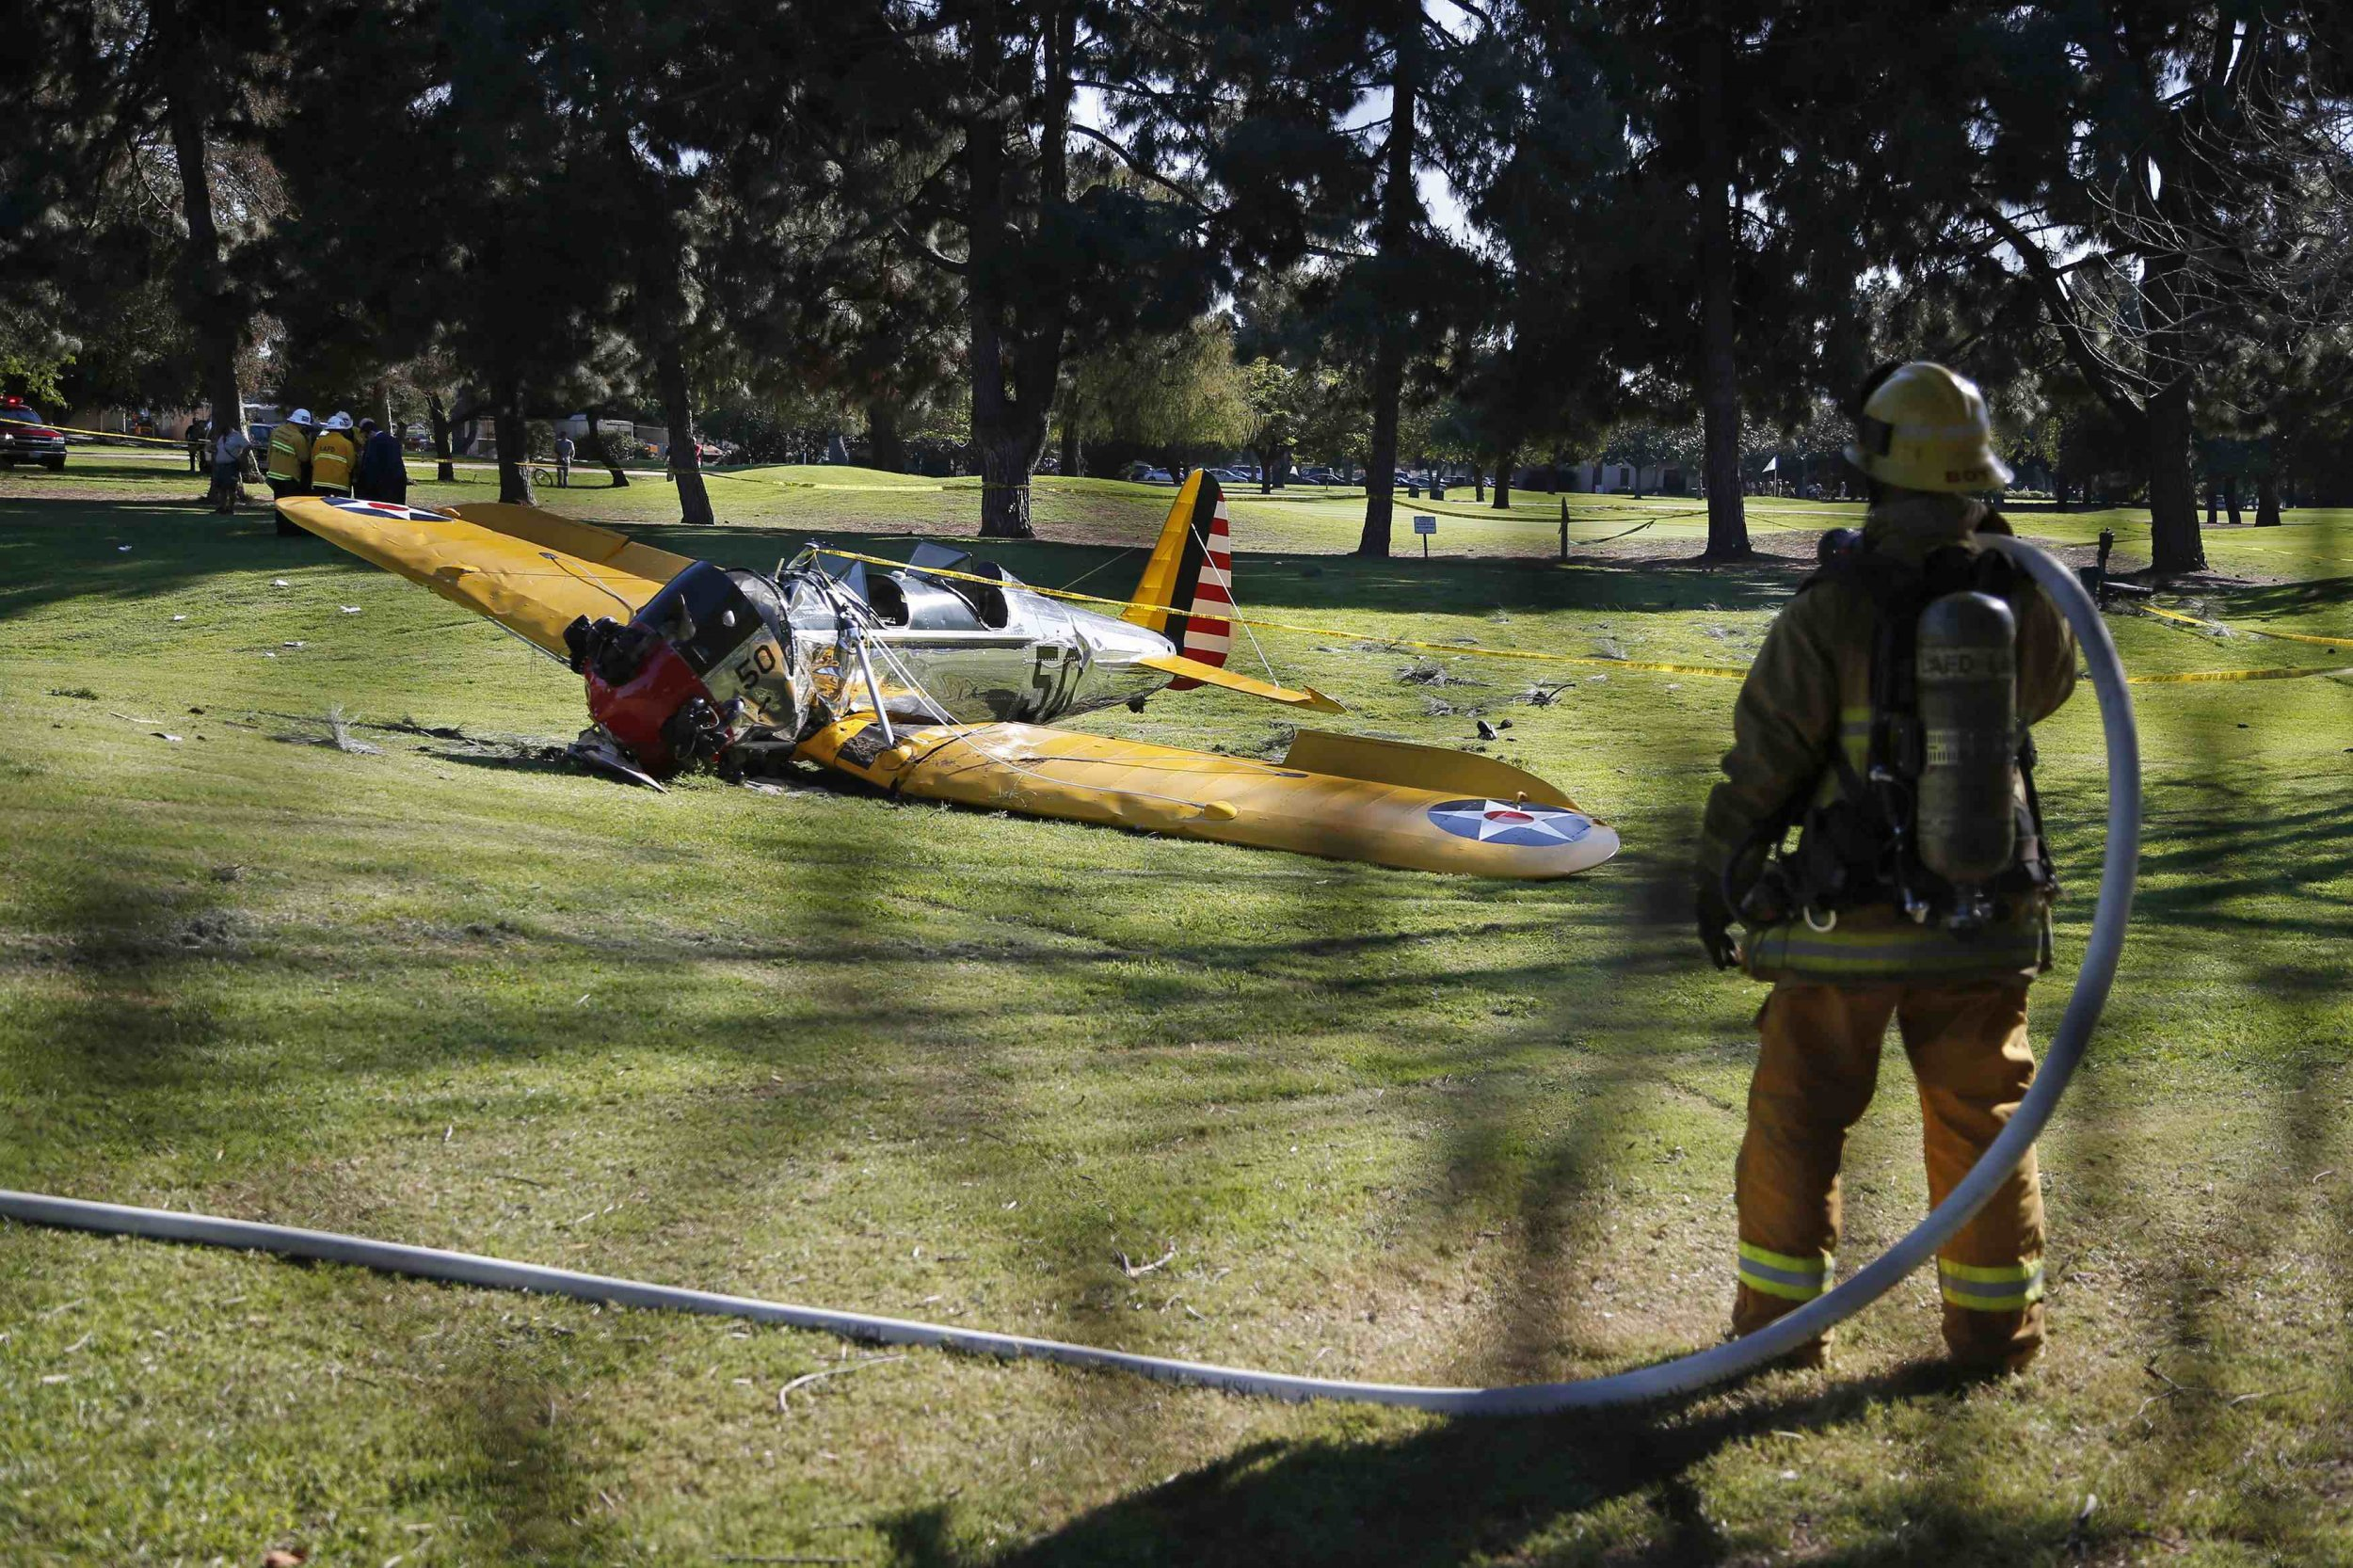 2015-03-06T002953Z_466371492_GM1EB360NHR01_RTRMADP_3_USA-HARRISON-FORD